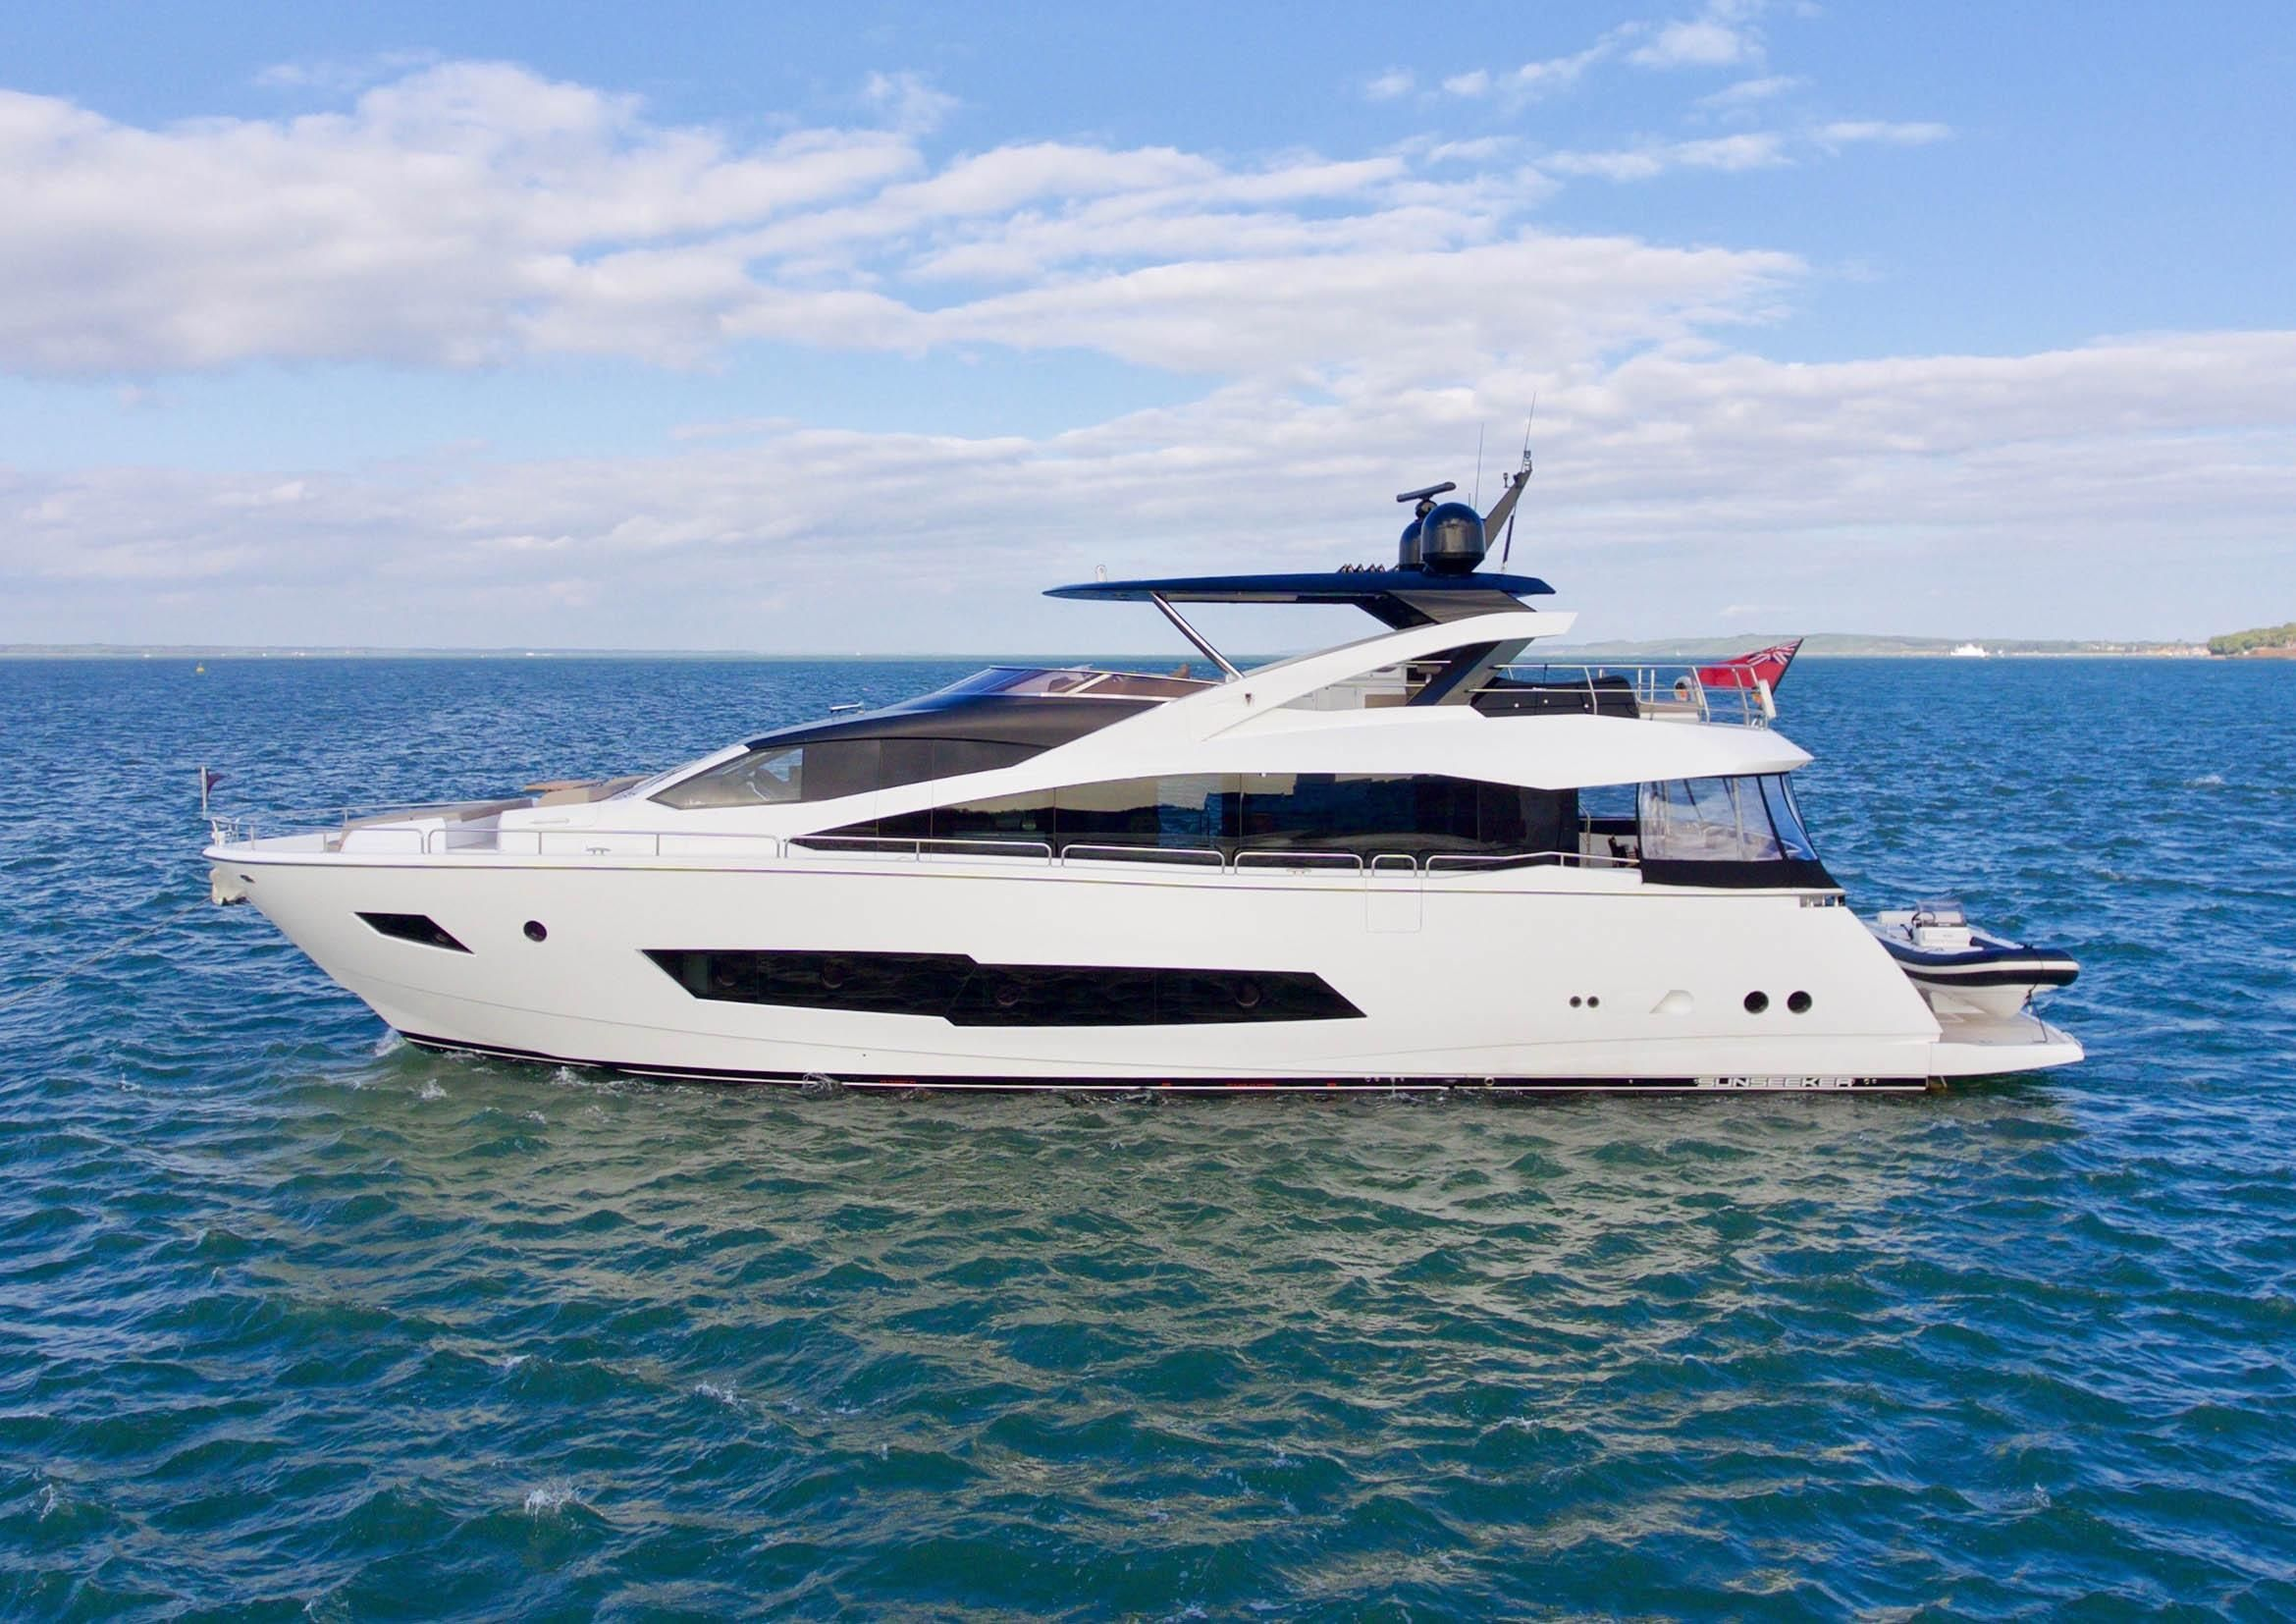 Piastre A Induzione Costi 2017 sunseeker 86 yacht power new and used boats for sale -